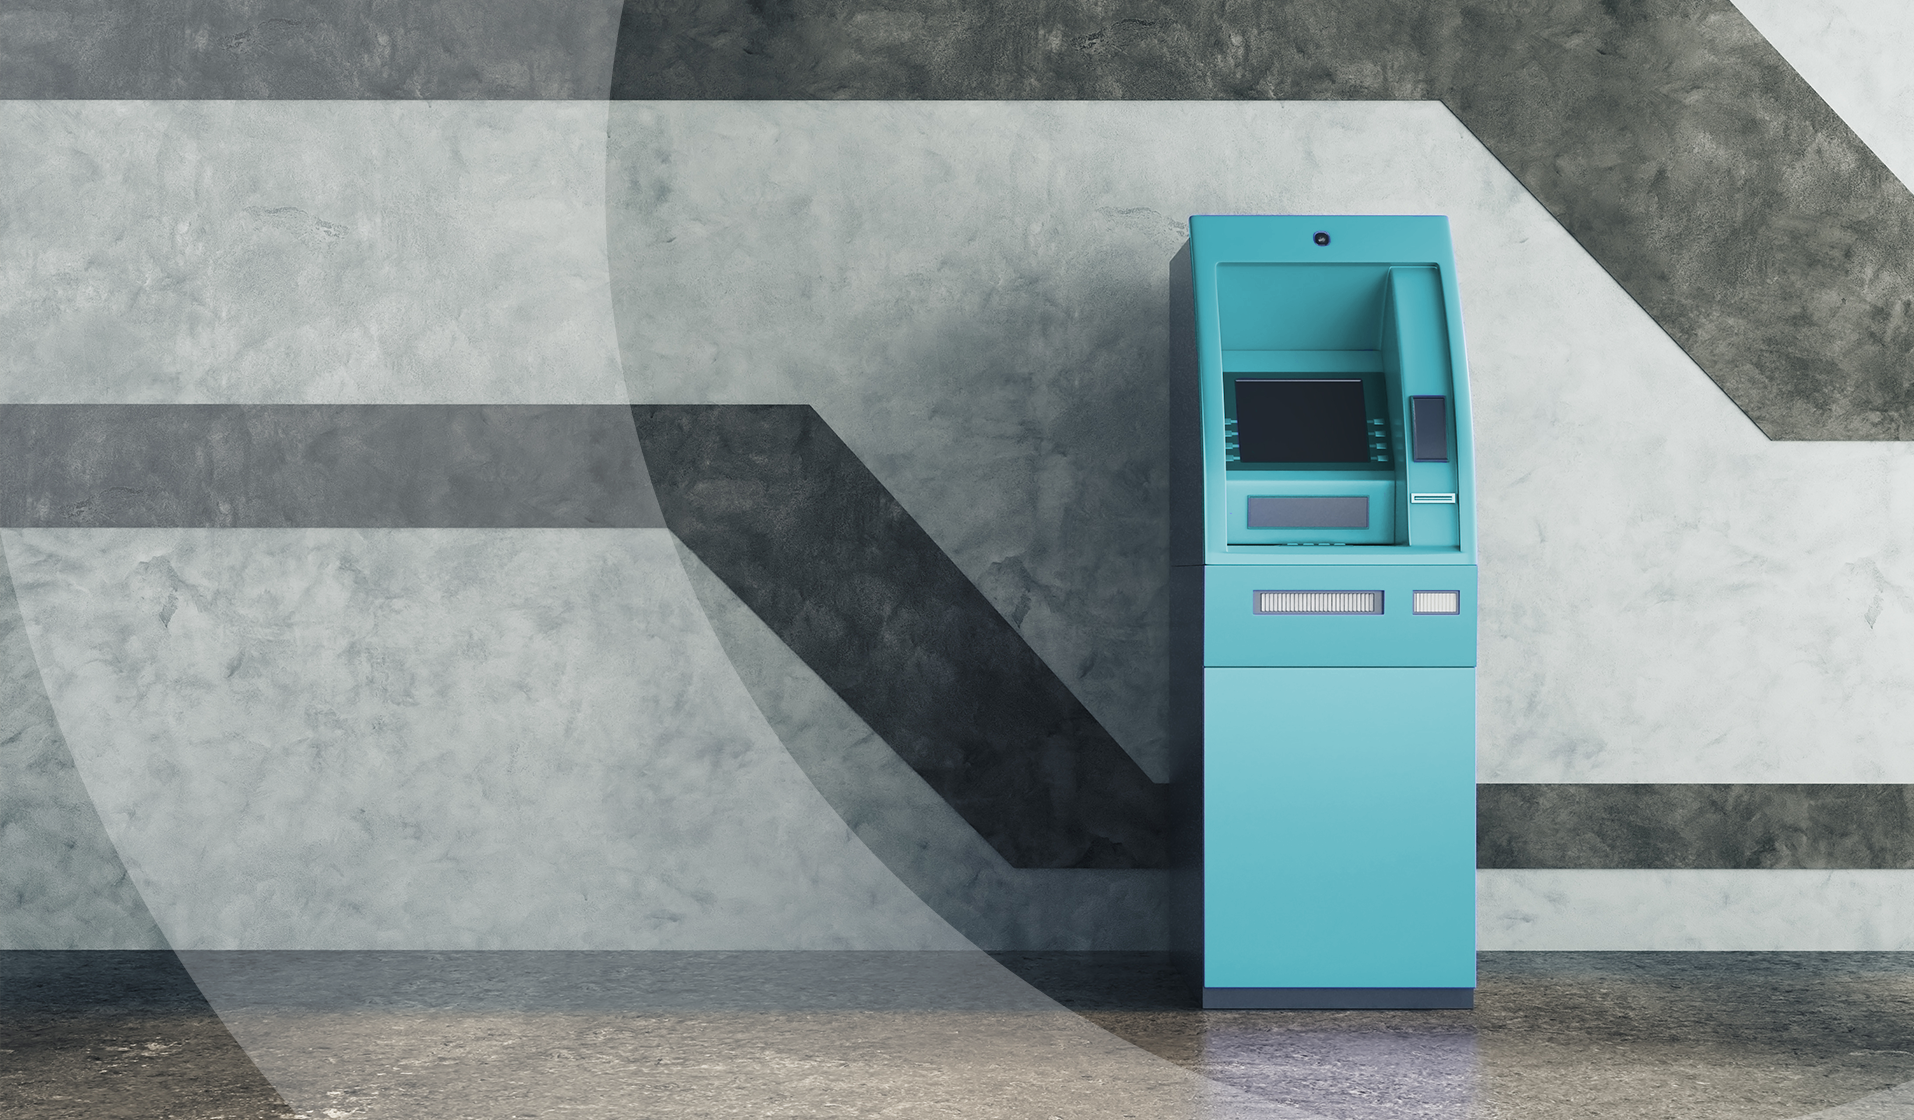 Four stages of launching an ATM business